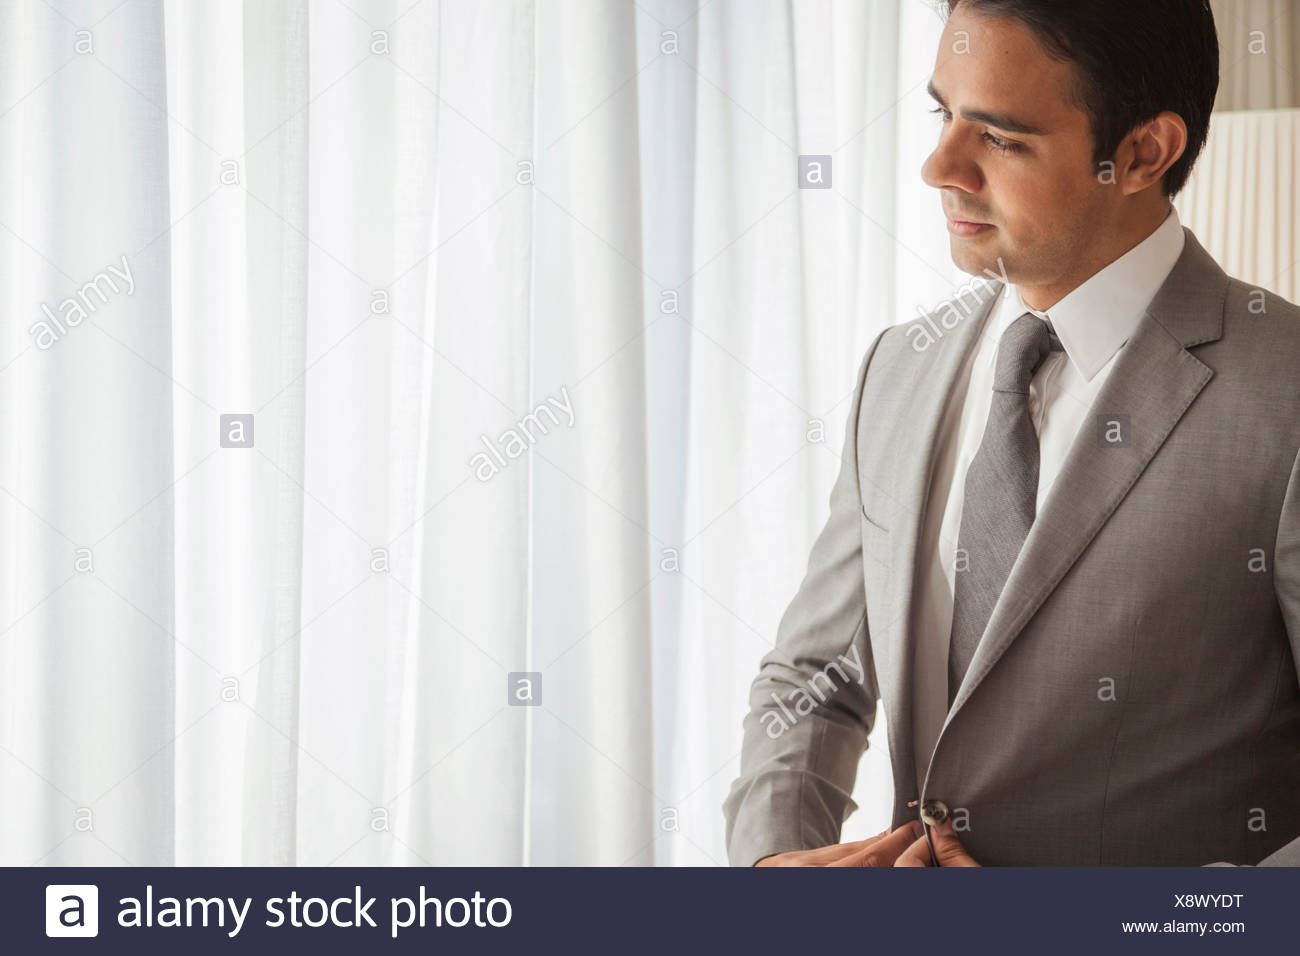 Businessman looking out of window - Stock Image